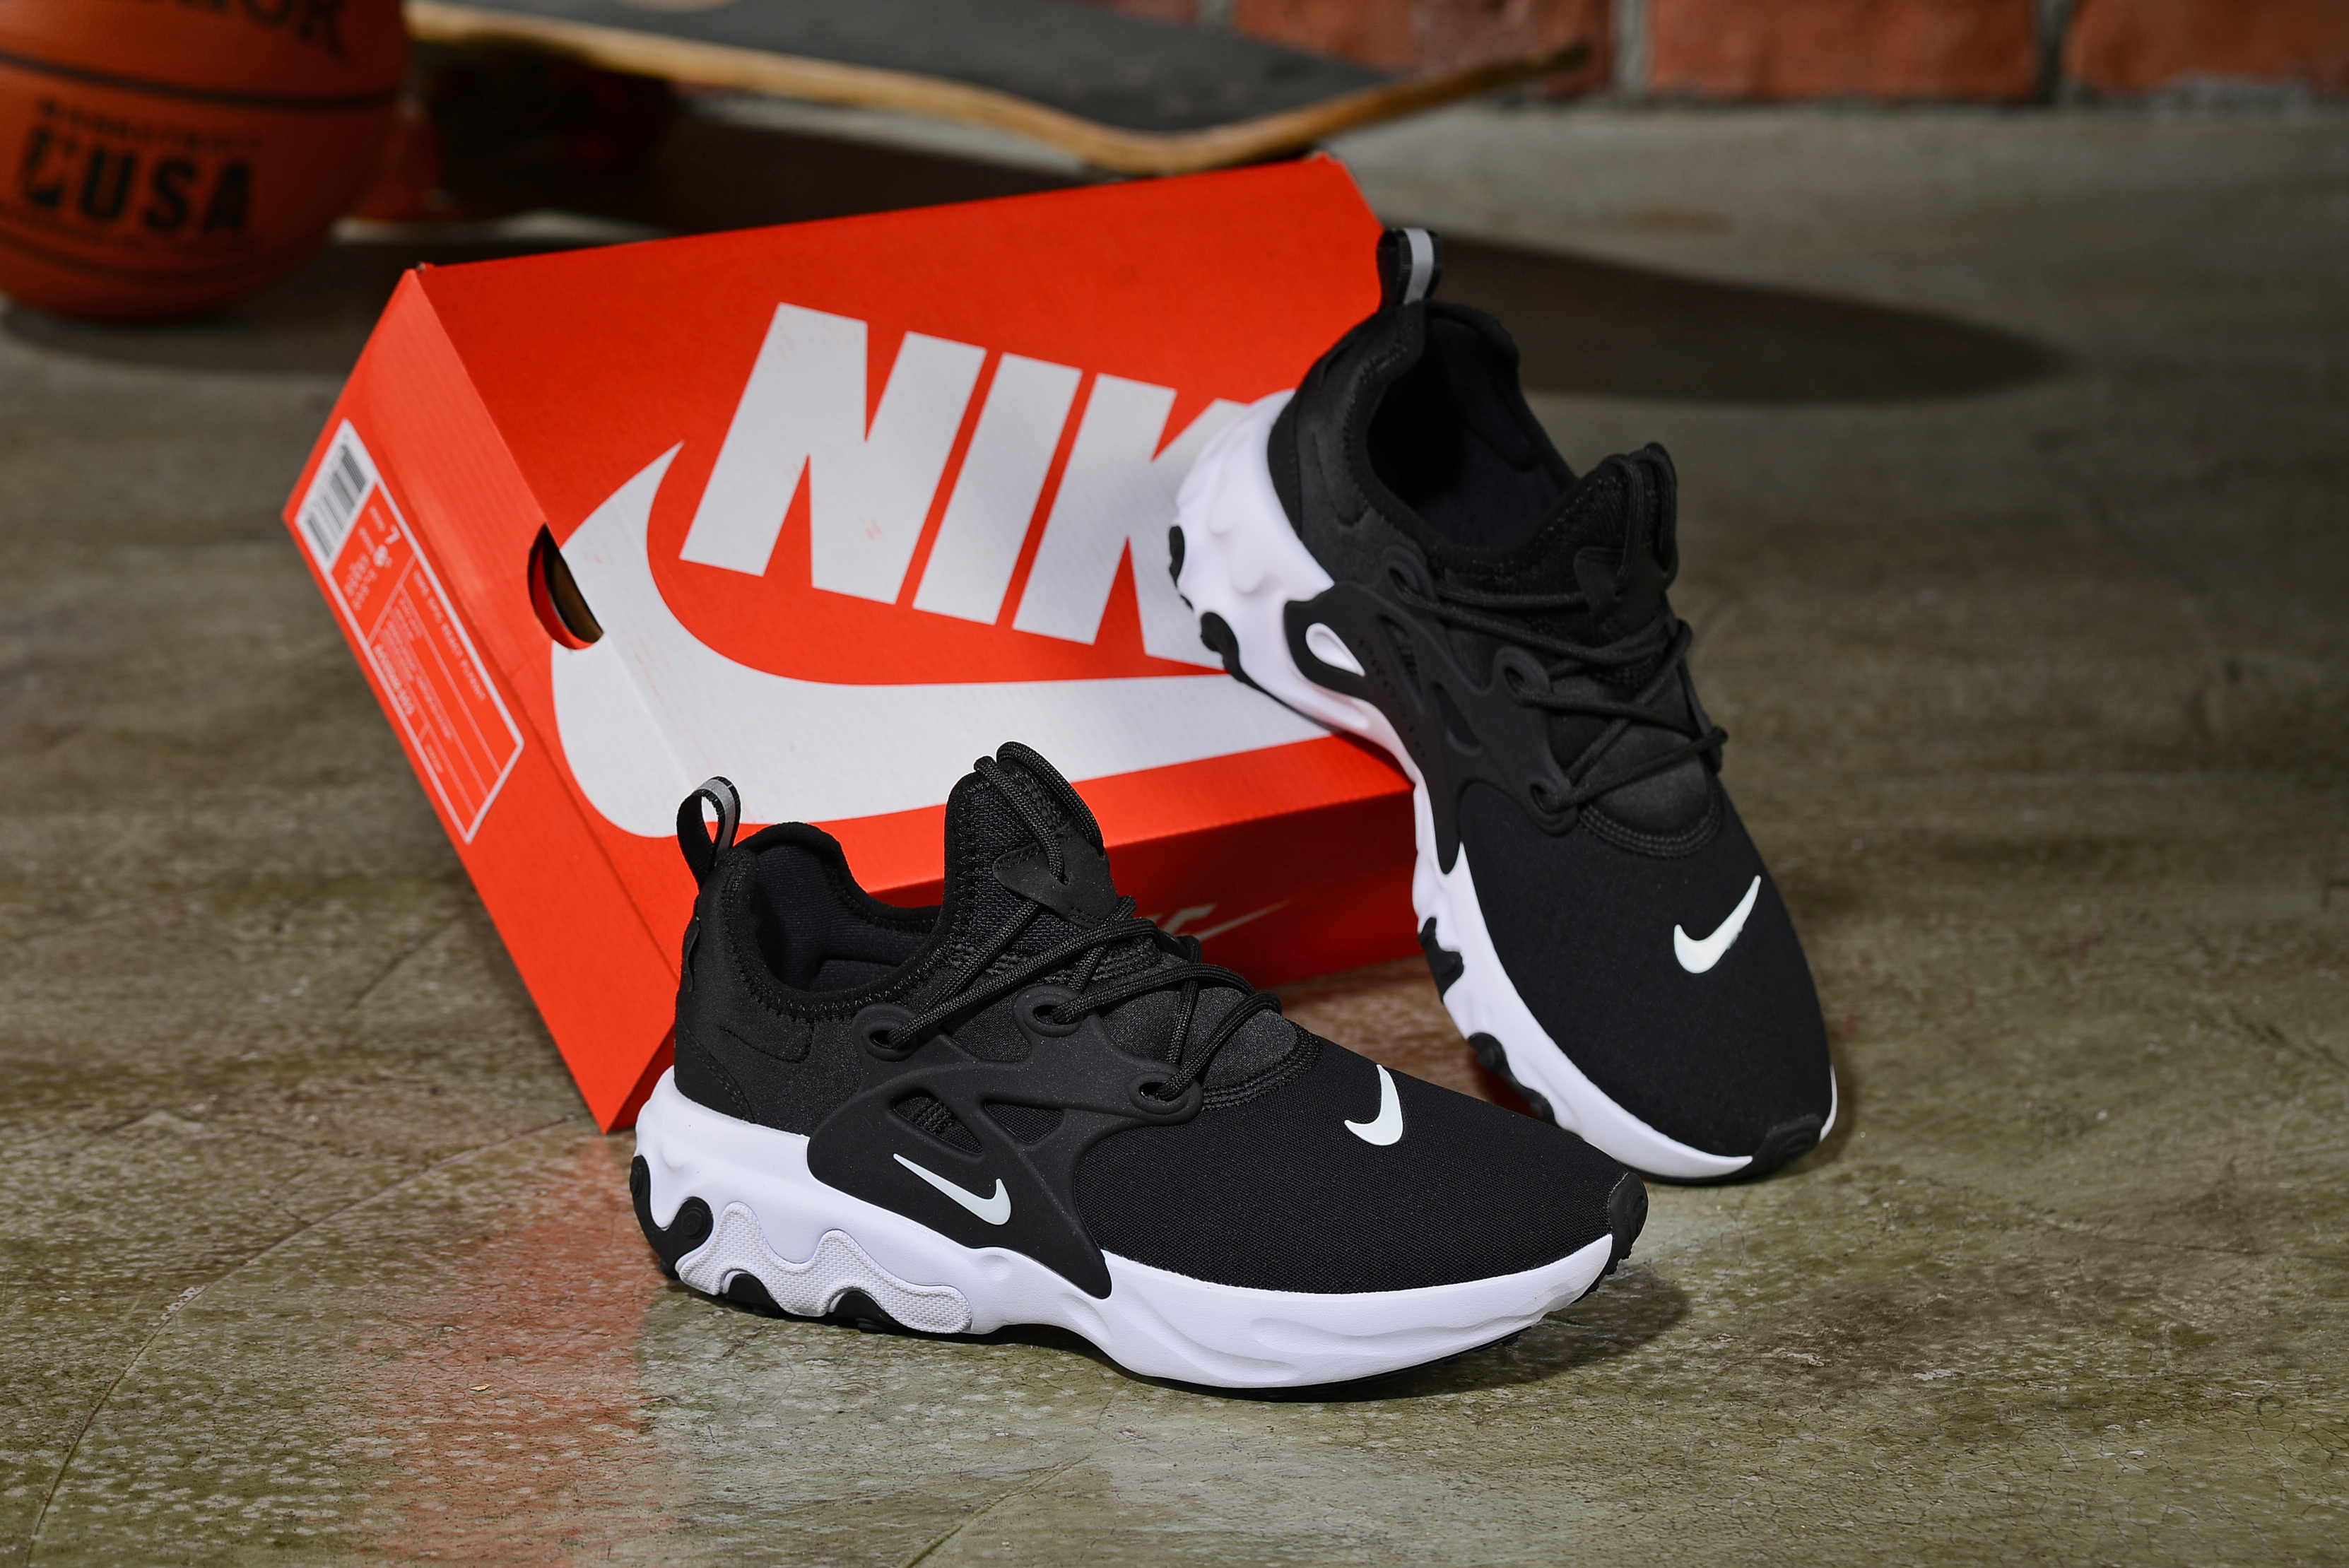 2019 Women Nike Epeic React Black White Shoes